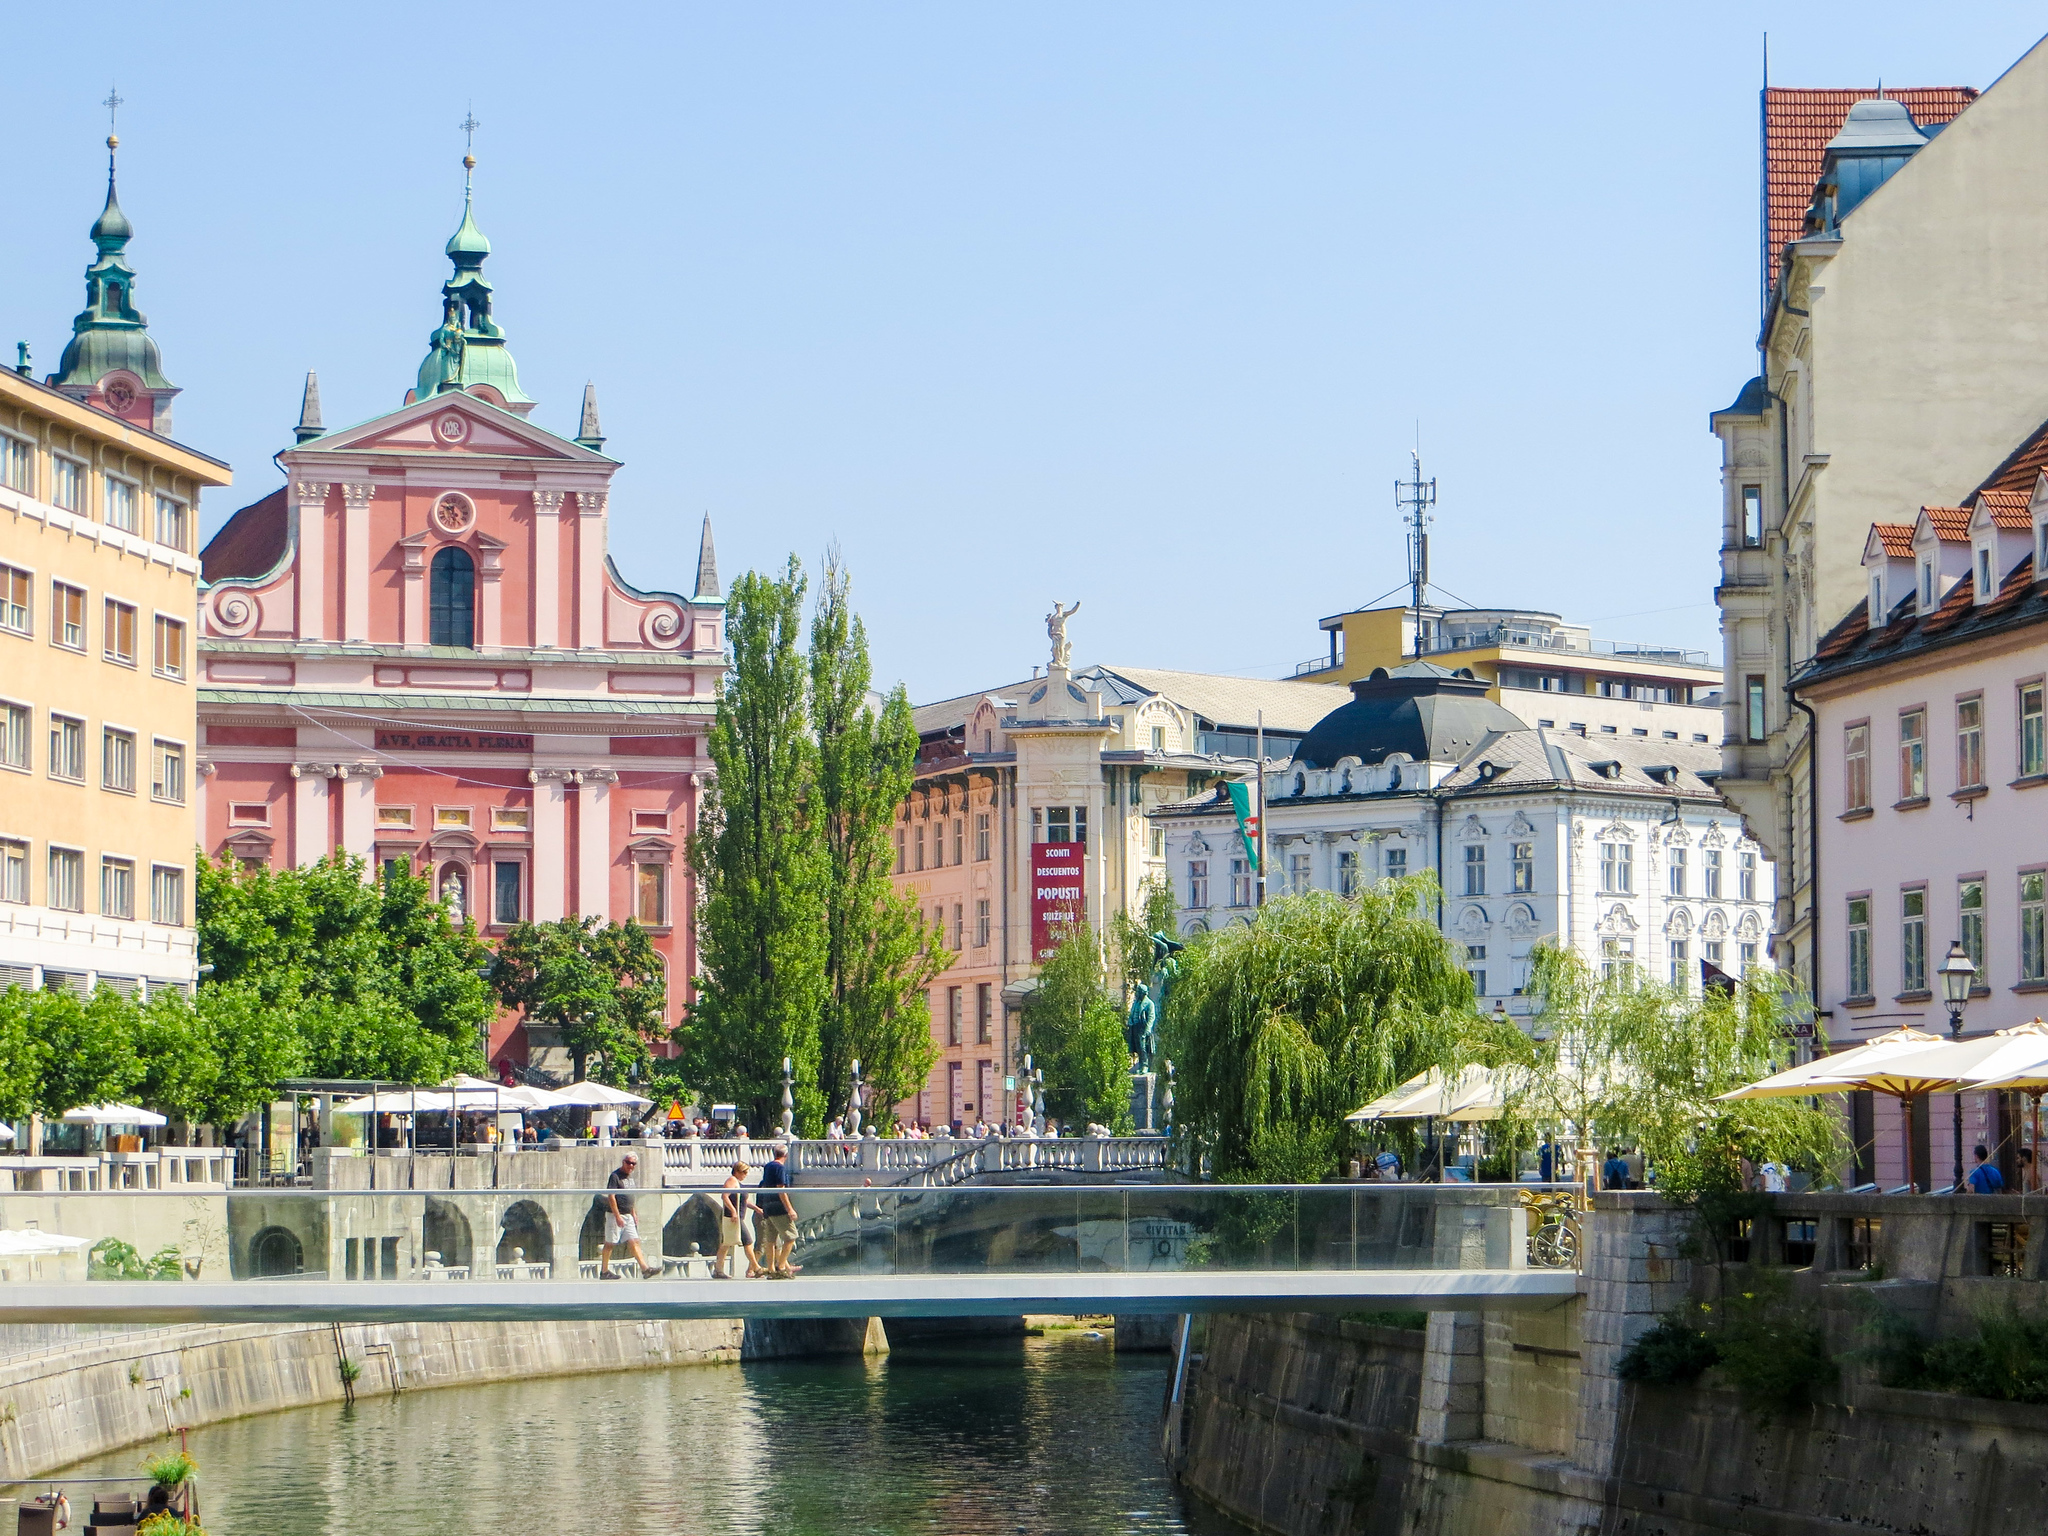 tips for traveling to europe for the first time? don't skip over slovenia